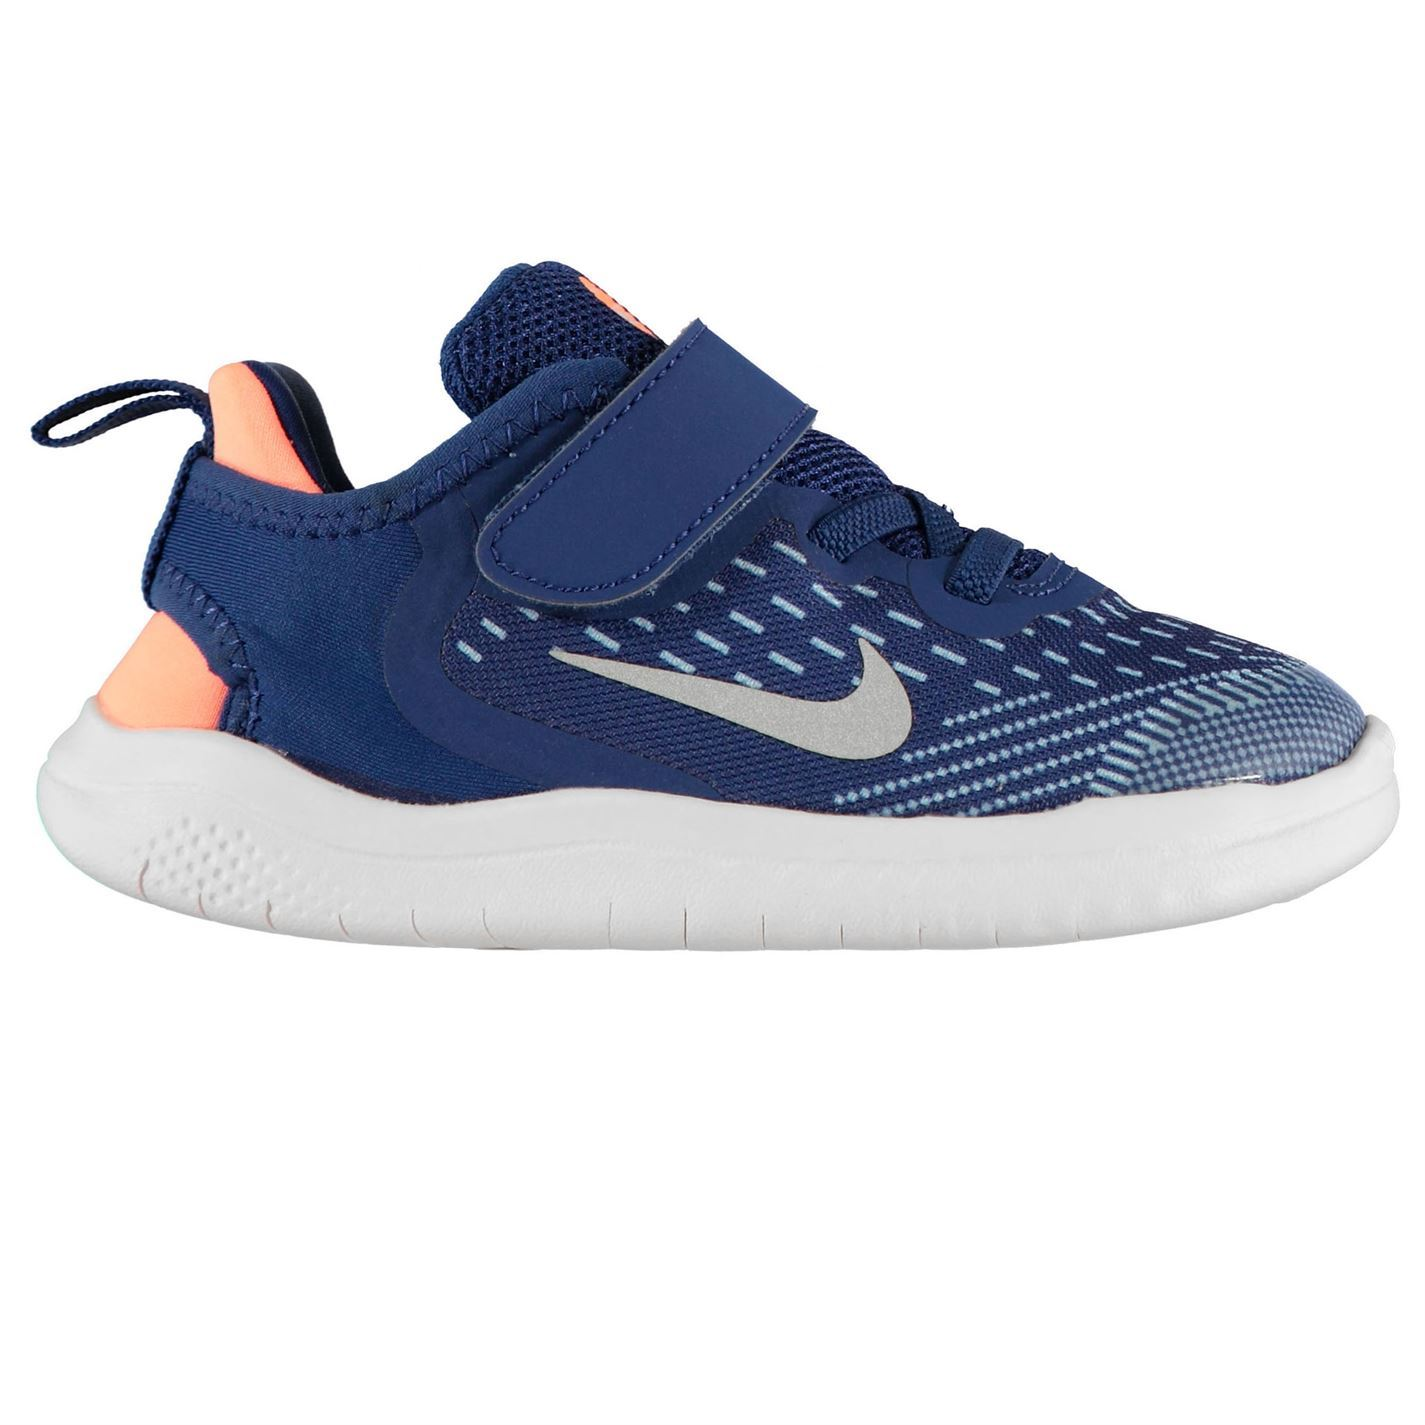 a7d3be7b09 Details about Nike Free RN 2018 Infants Trainers Boys Blue/Silver Shoes  Footwear